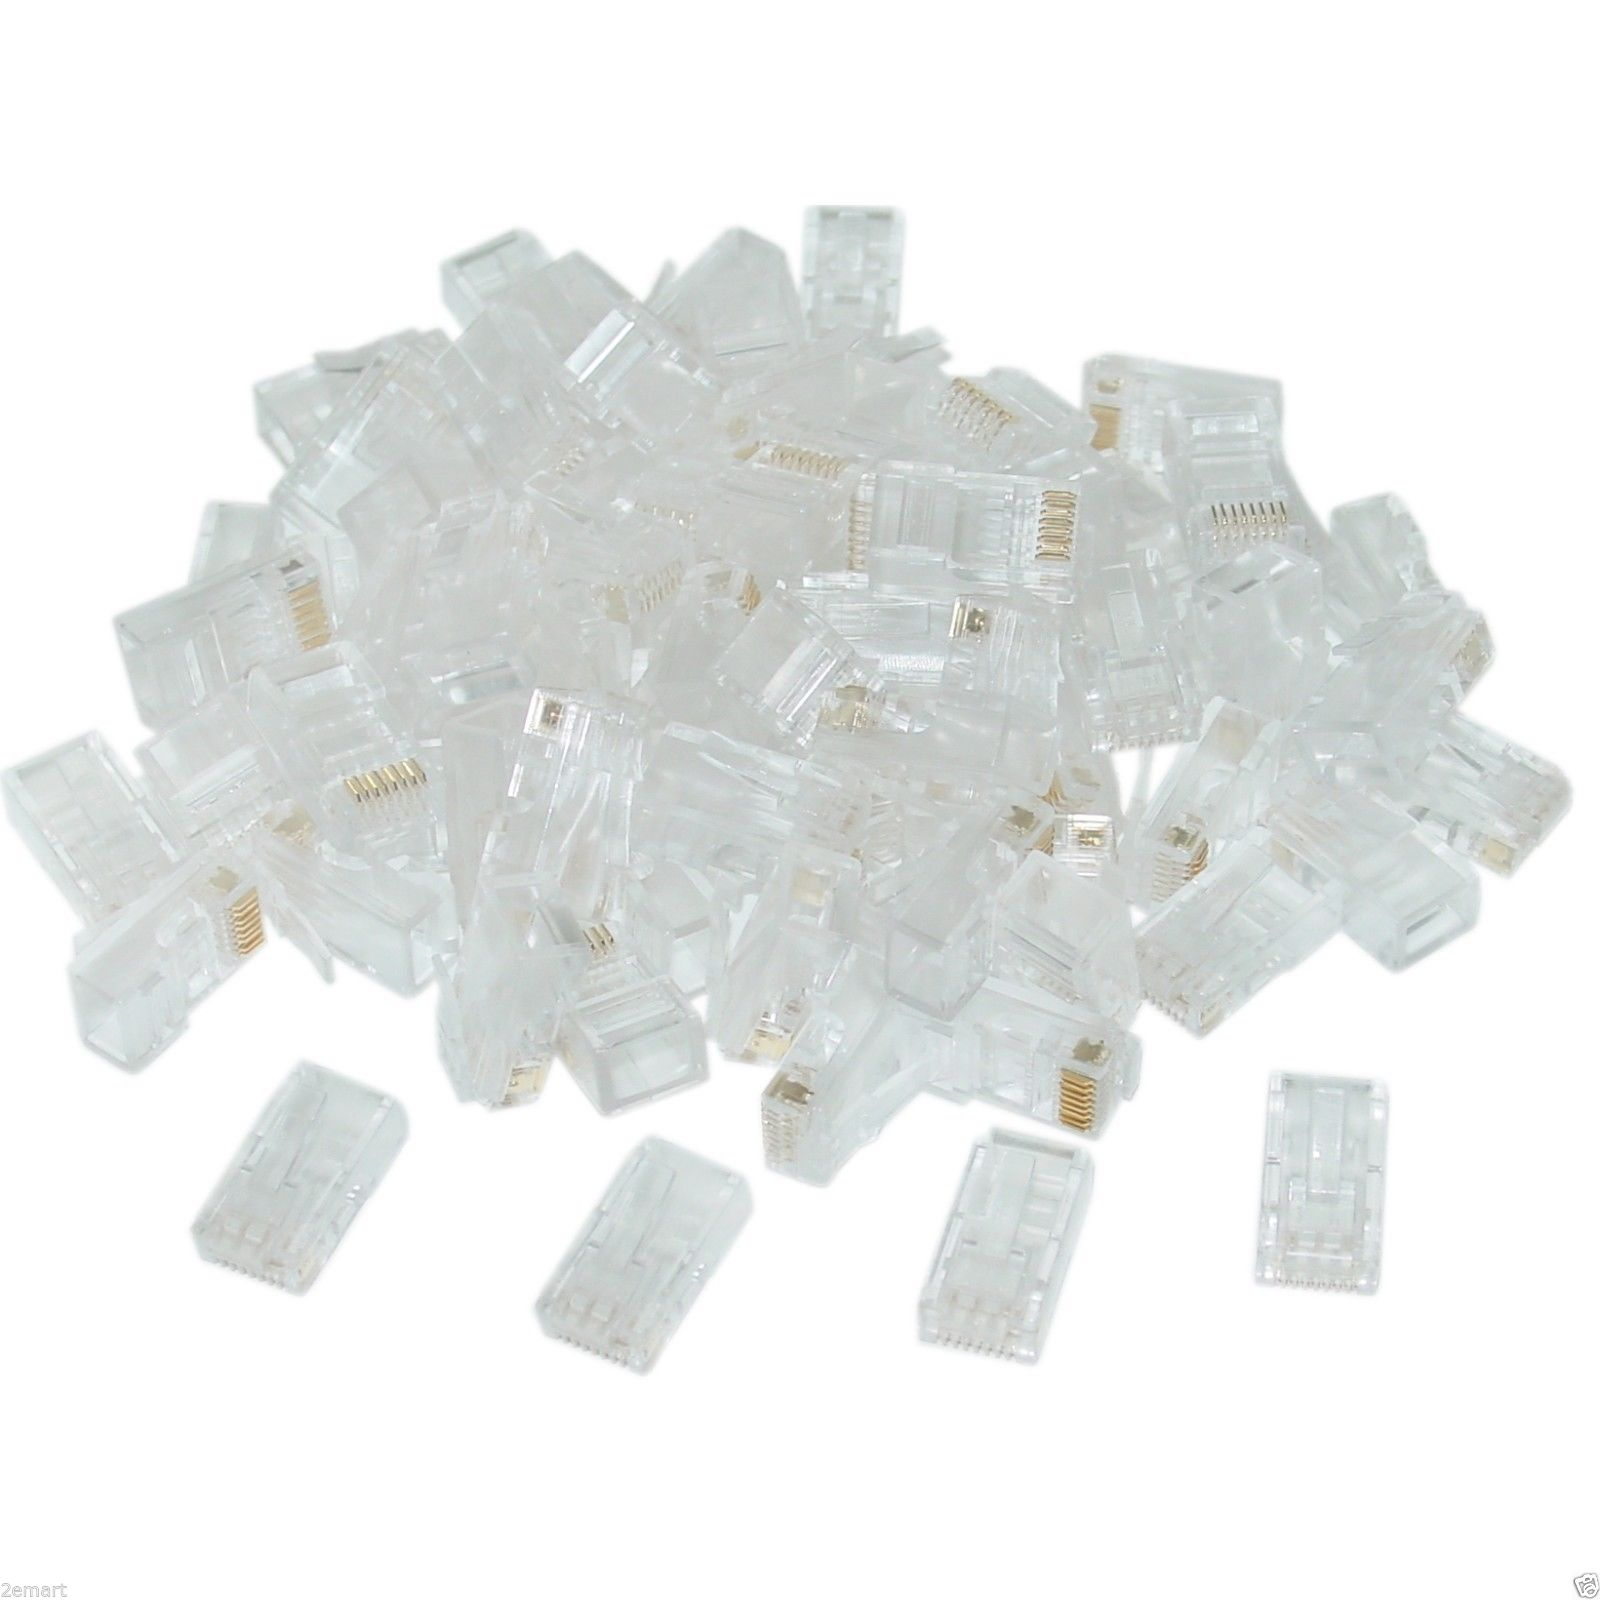 100X Cat5 RJ45 Crimp Connectors for Solid & Stranded Cat5 Cable